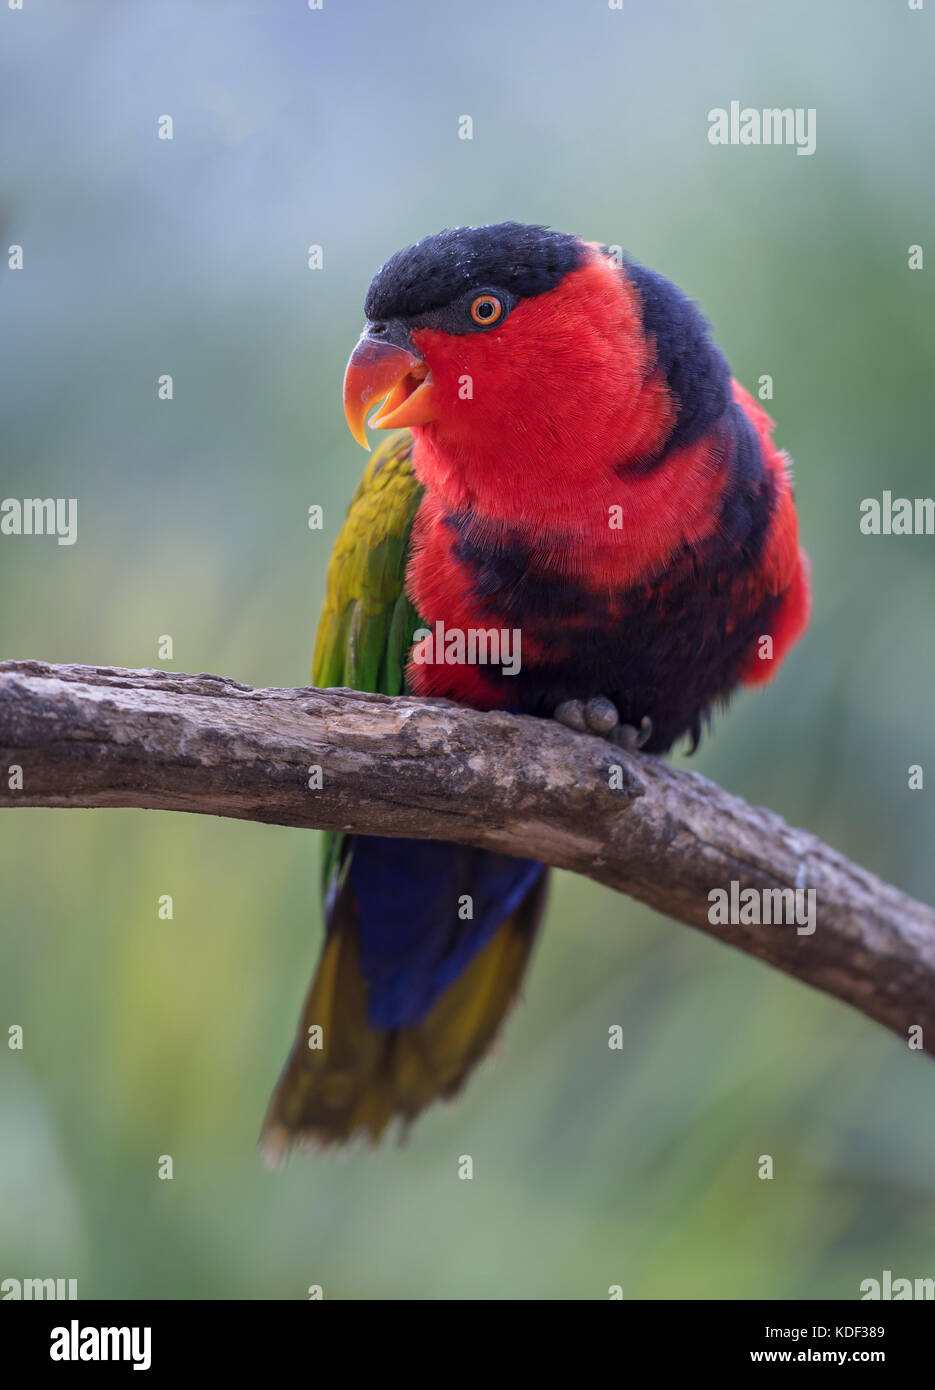 A black cap parrot displaying a beautiful colourful plumage sitting on a perch with a diffused back ground. - Stock Image